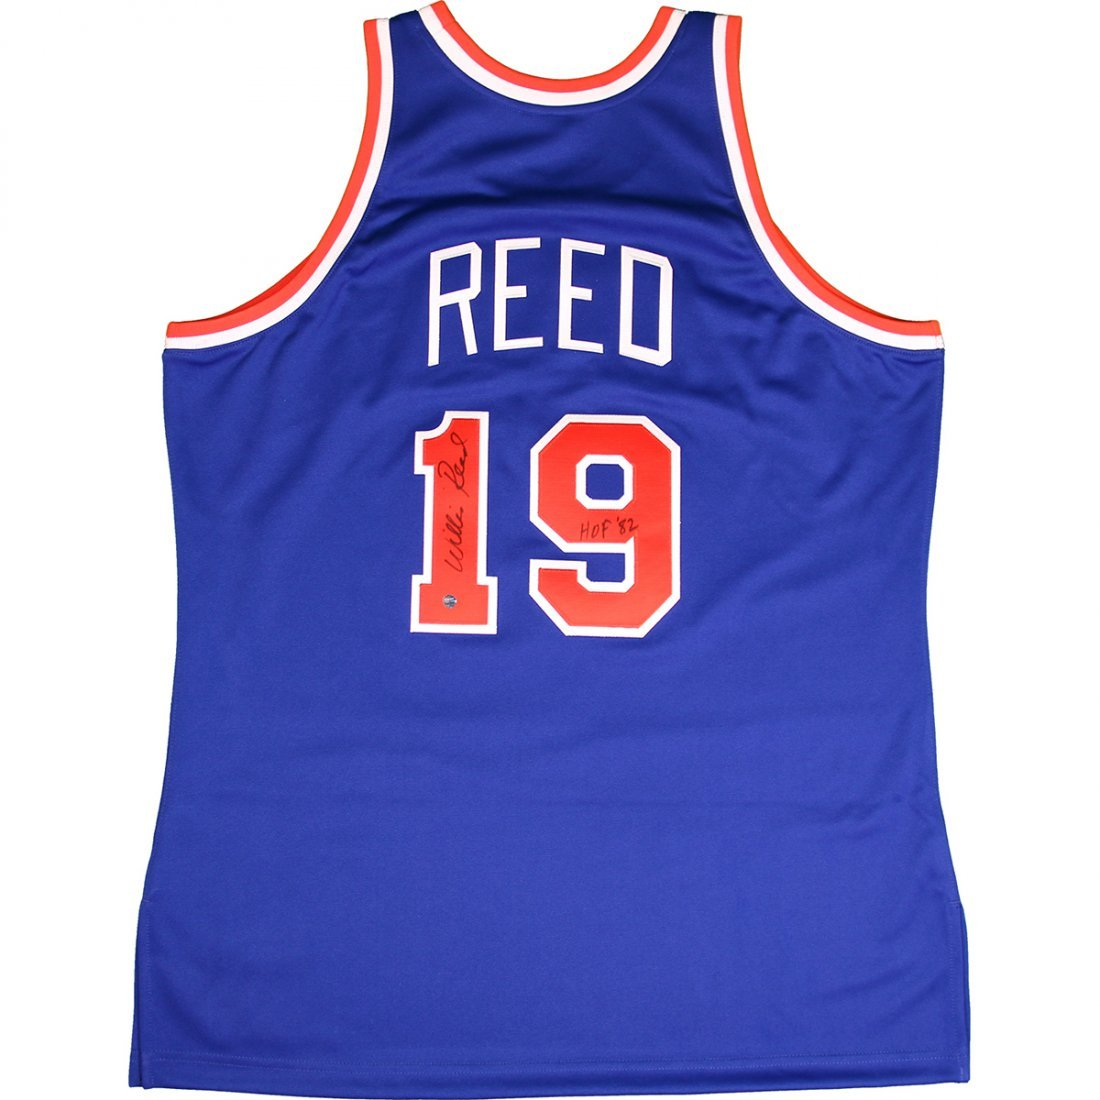 Willis Reed Signed 1972-73 New York Knicks Blue Authent